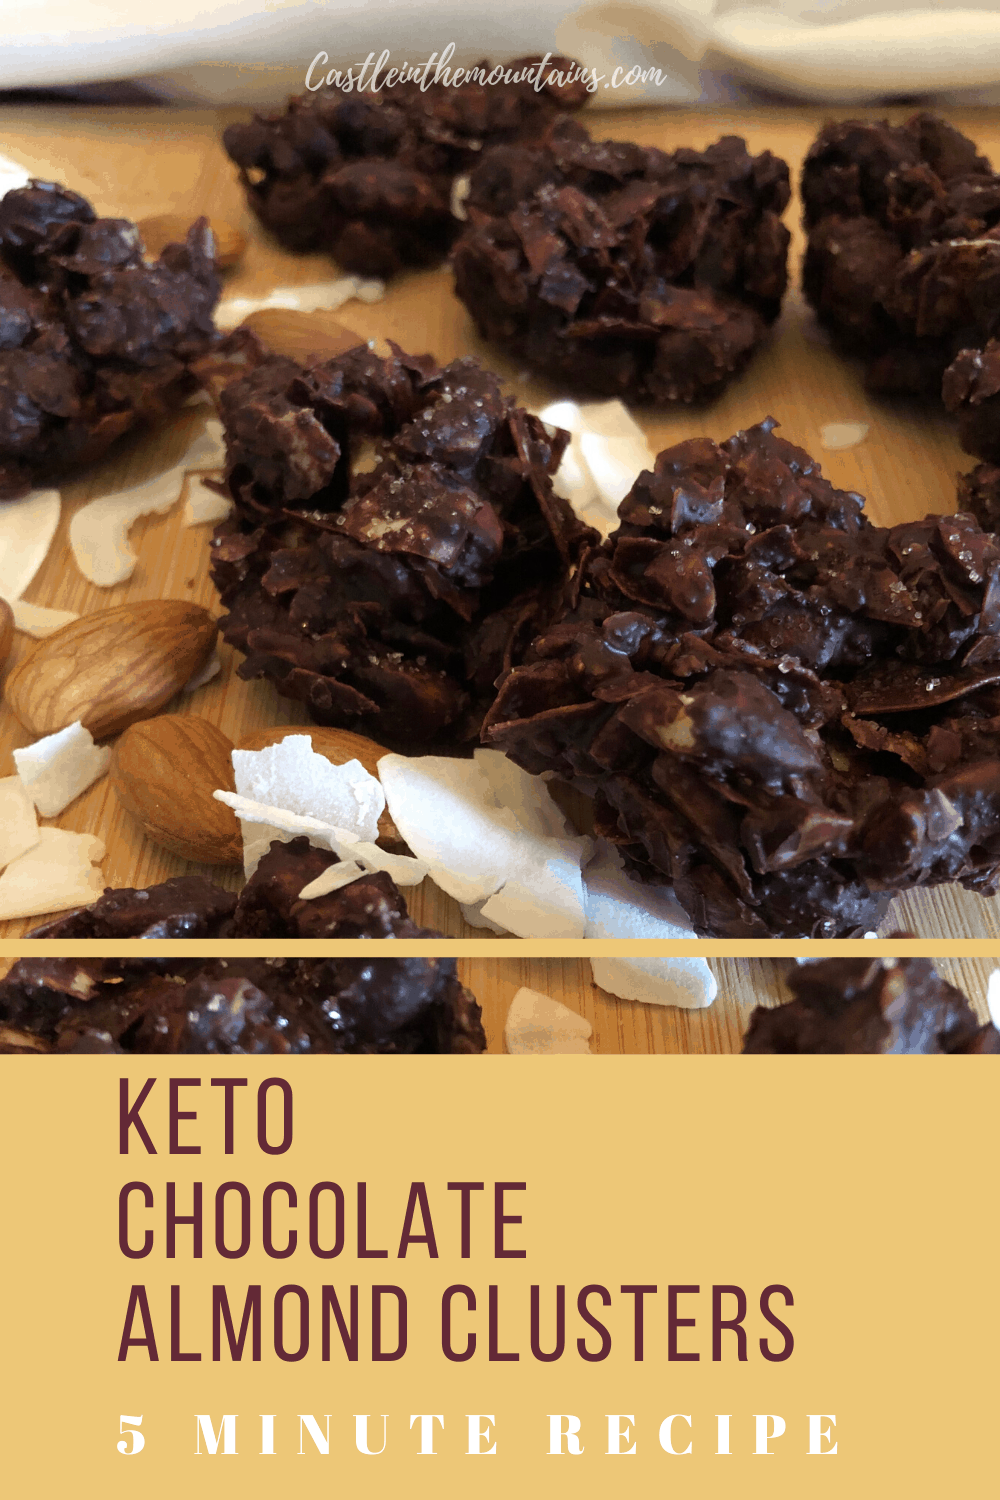 Keto Chocolate Almond Clusters